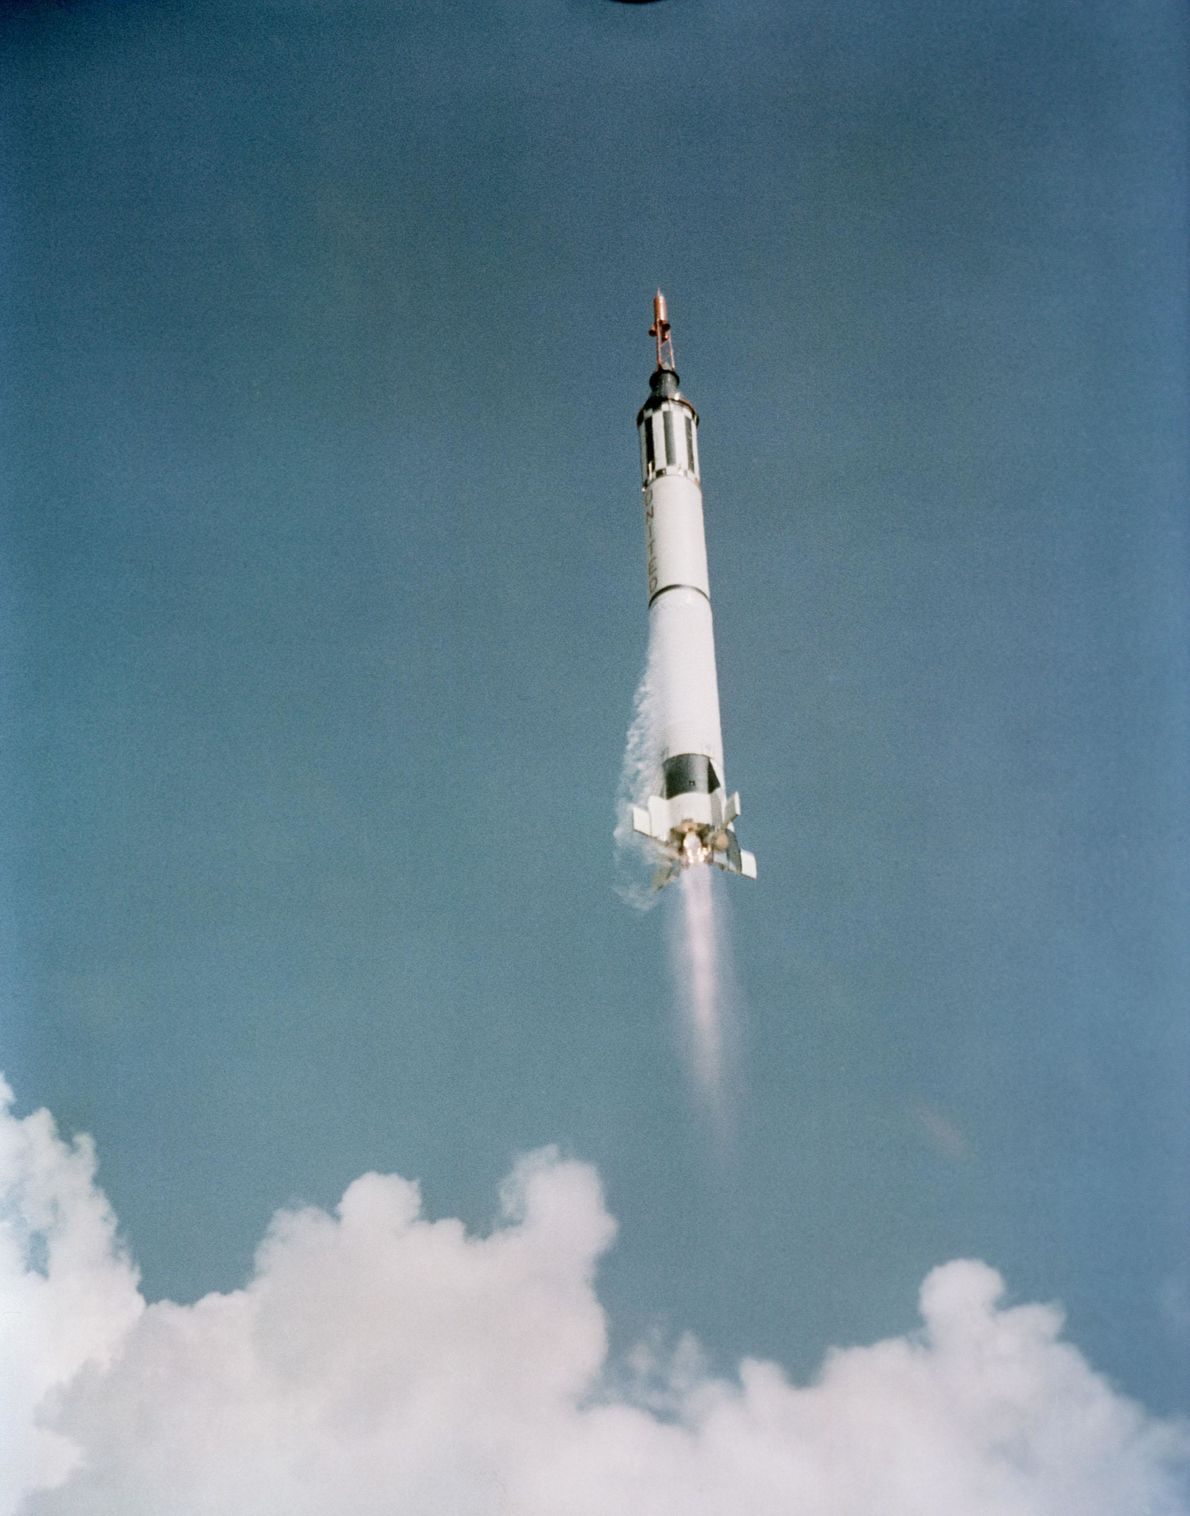 Alan Shepard blasts off in the Freedom 7 capsule atop the Mercury-Redstone 3: May 5th, 1961. ...